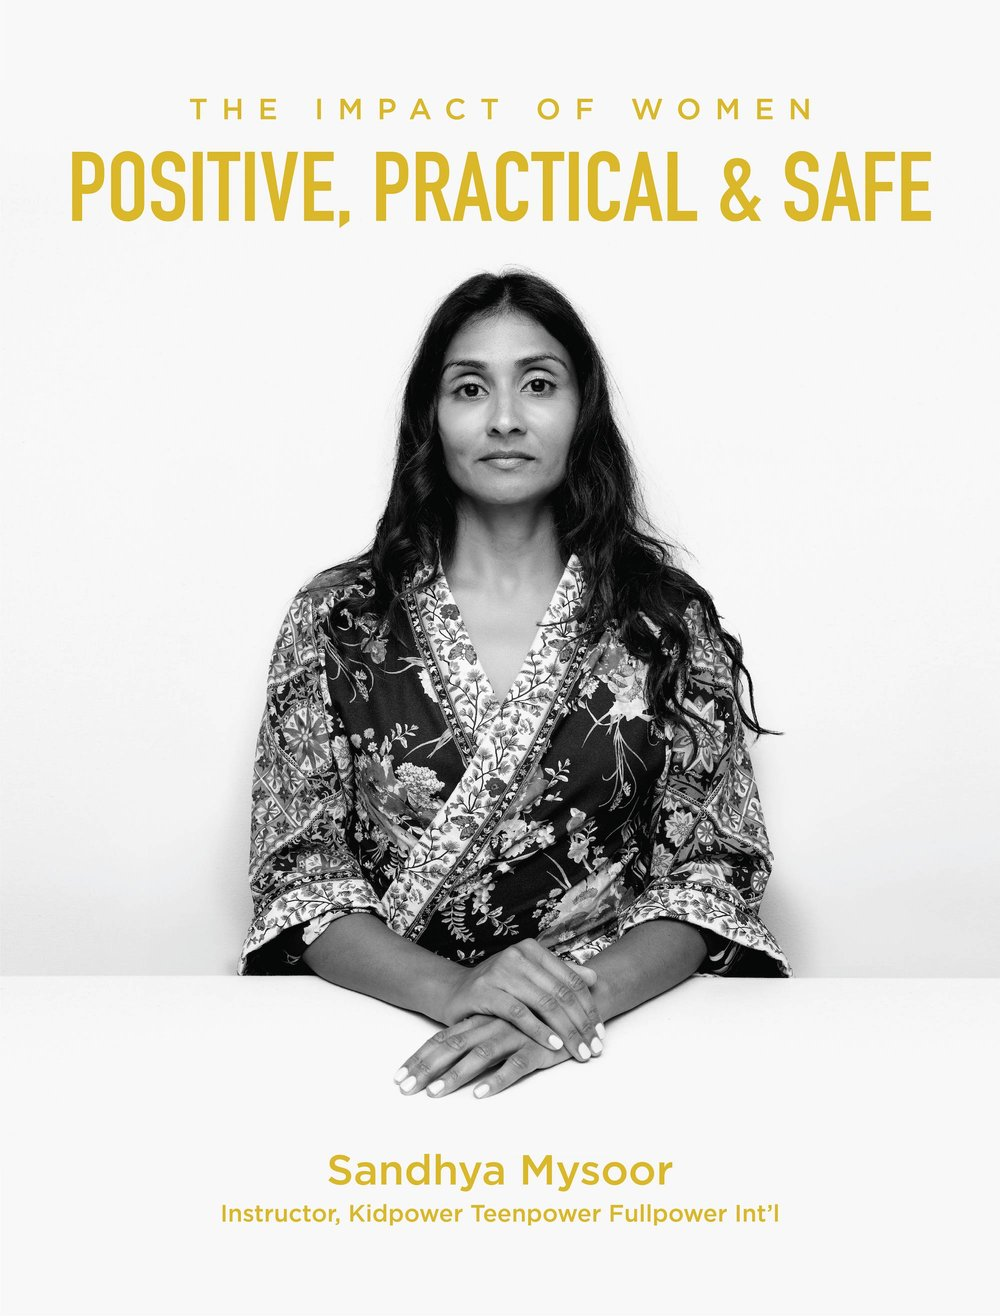 Sandhya Mysoor is about Personal Safety